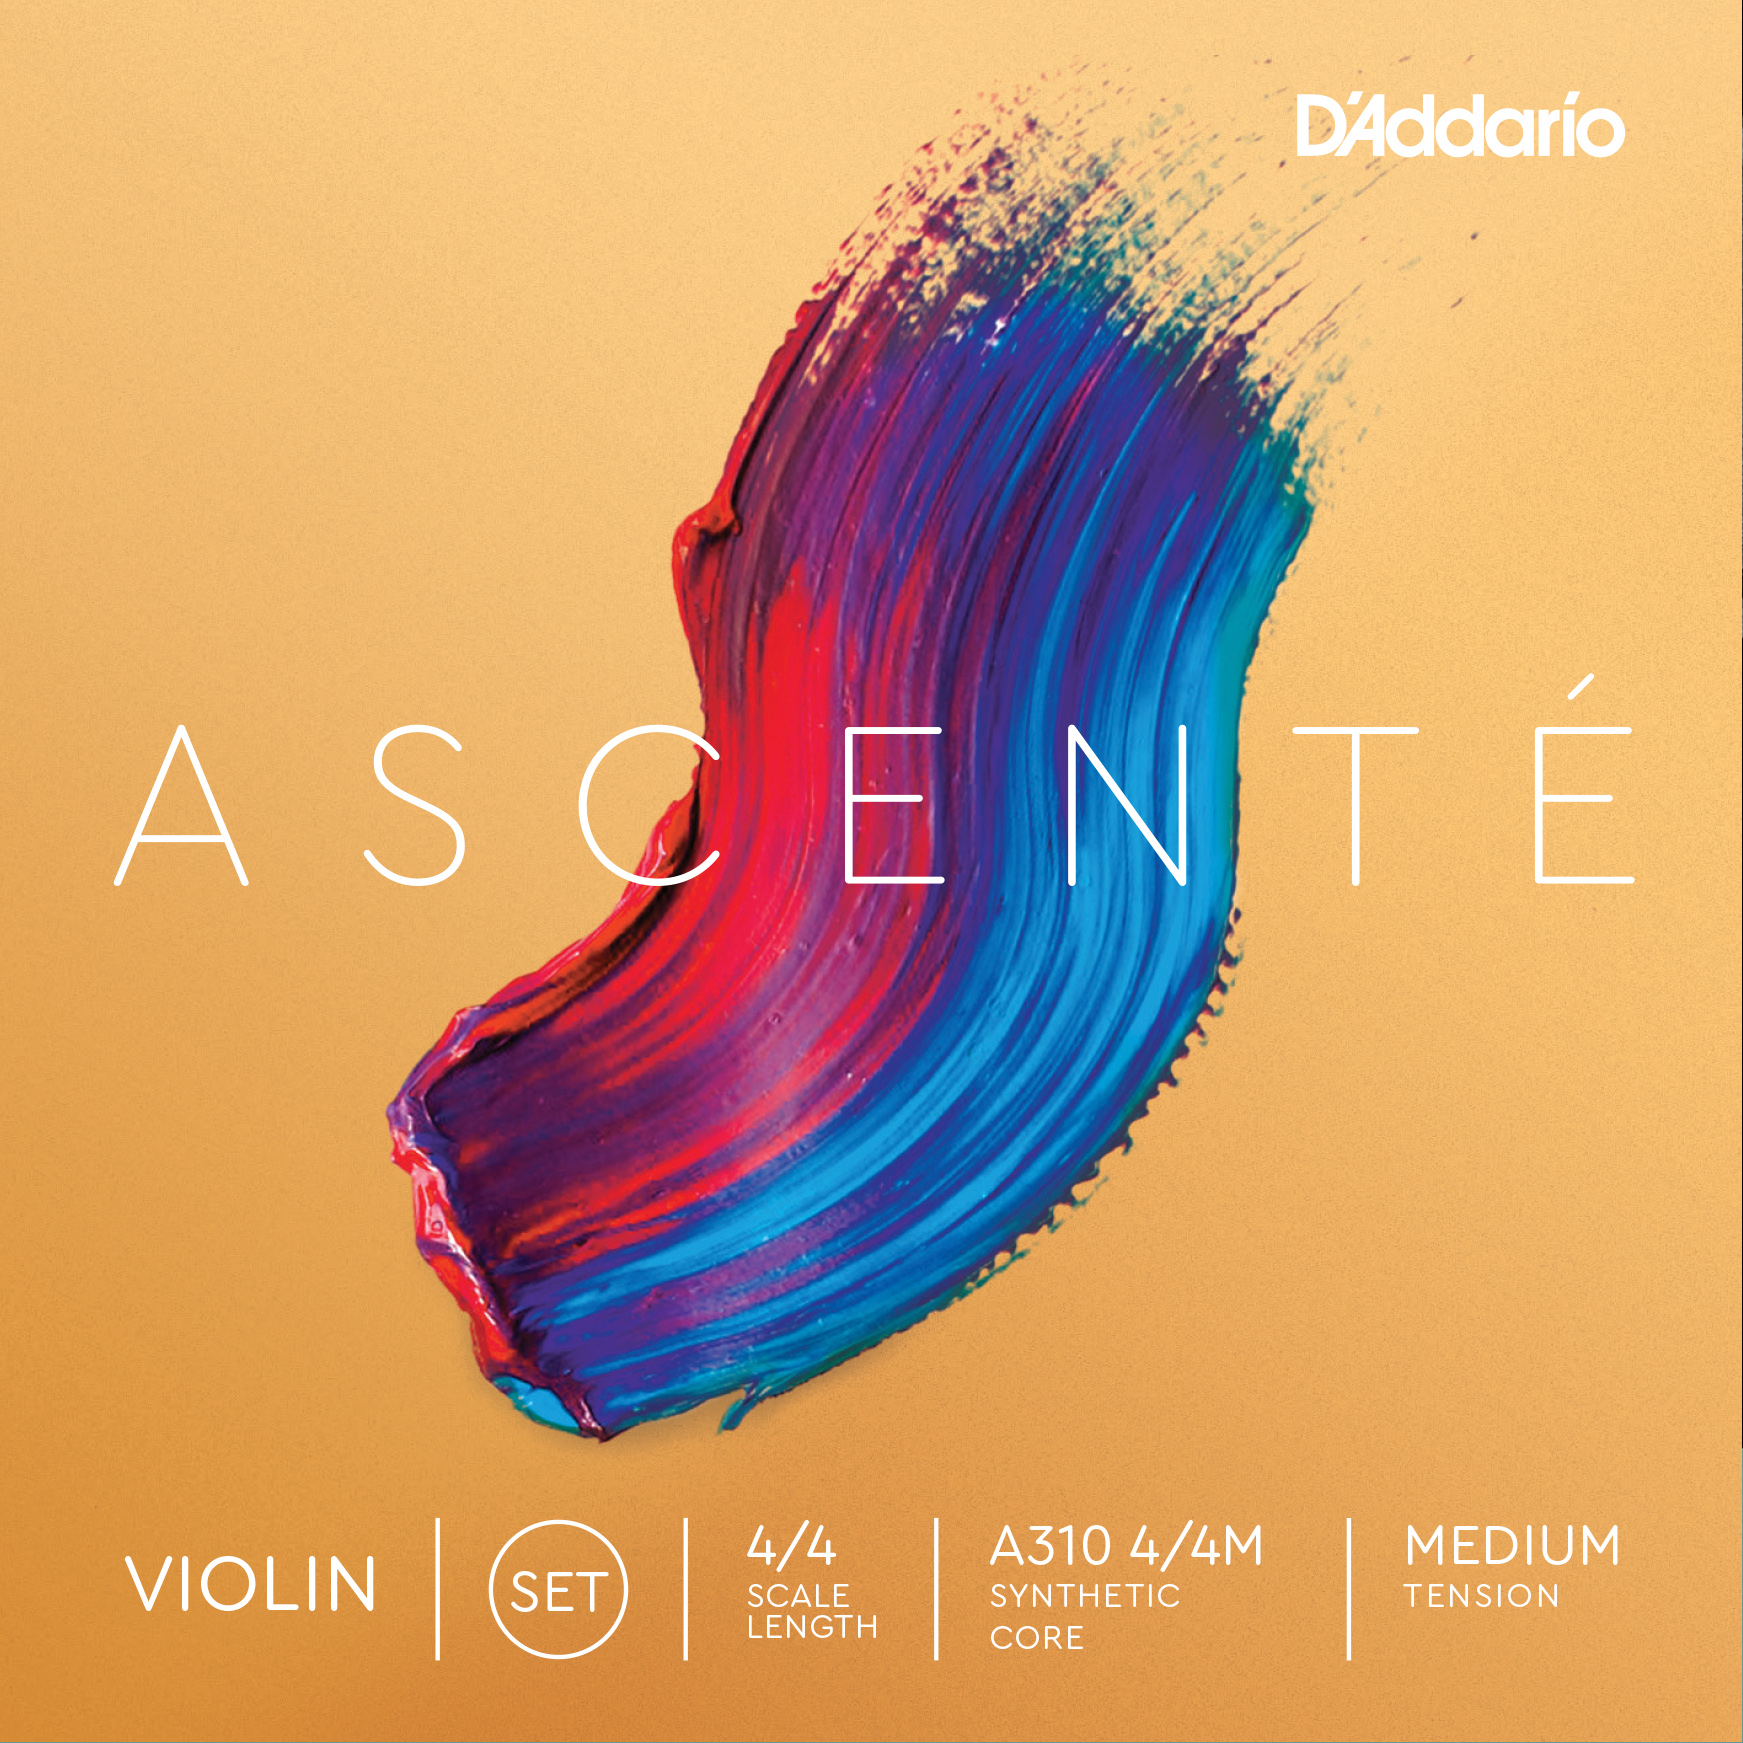 D'Addario Ascenté Violin Strings - Set